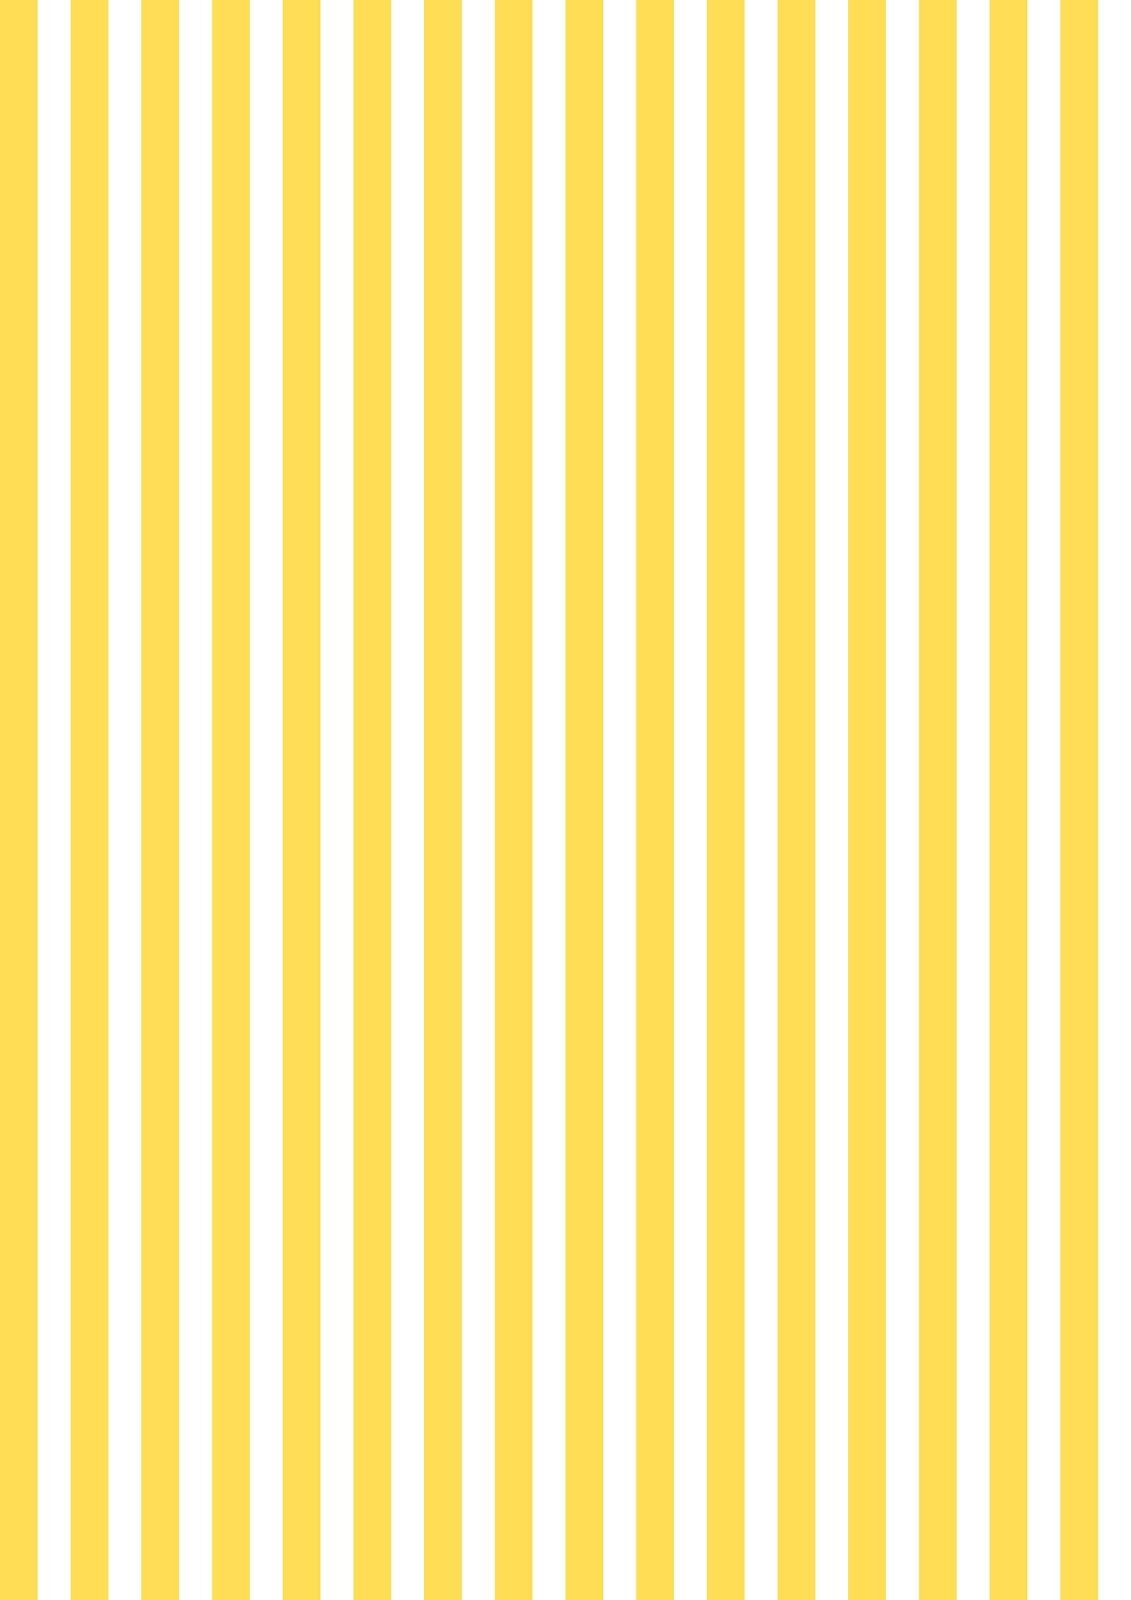 Border frame with black and yellow stripe on white background - Free Printable Yellow White Striped Pattern Paper